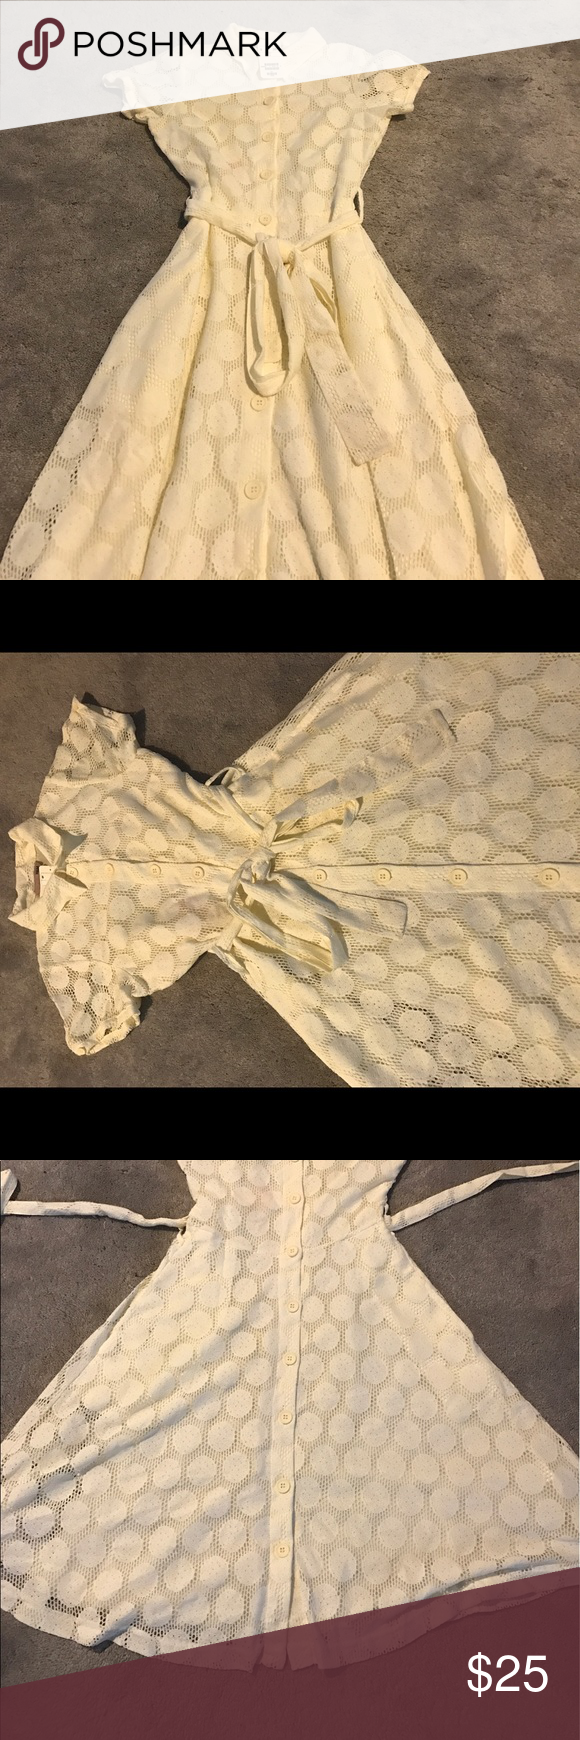 H&m yellow lace dress  HuM White Lace Polka Dot Dress NWT NWT  White lace Swing skirt and